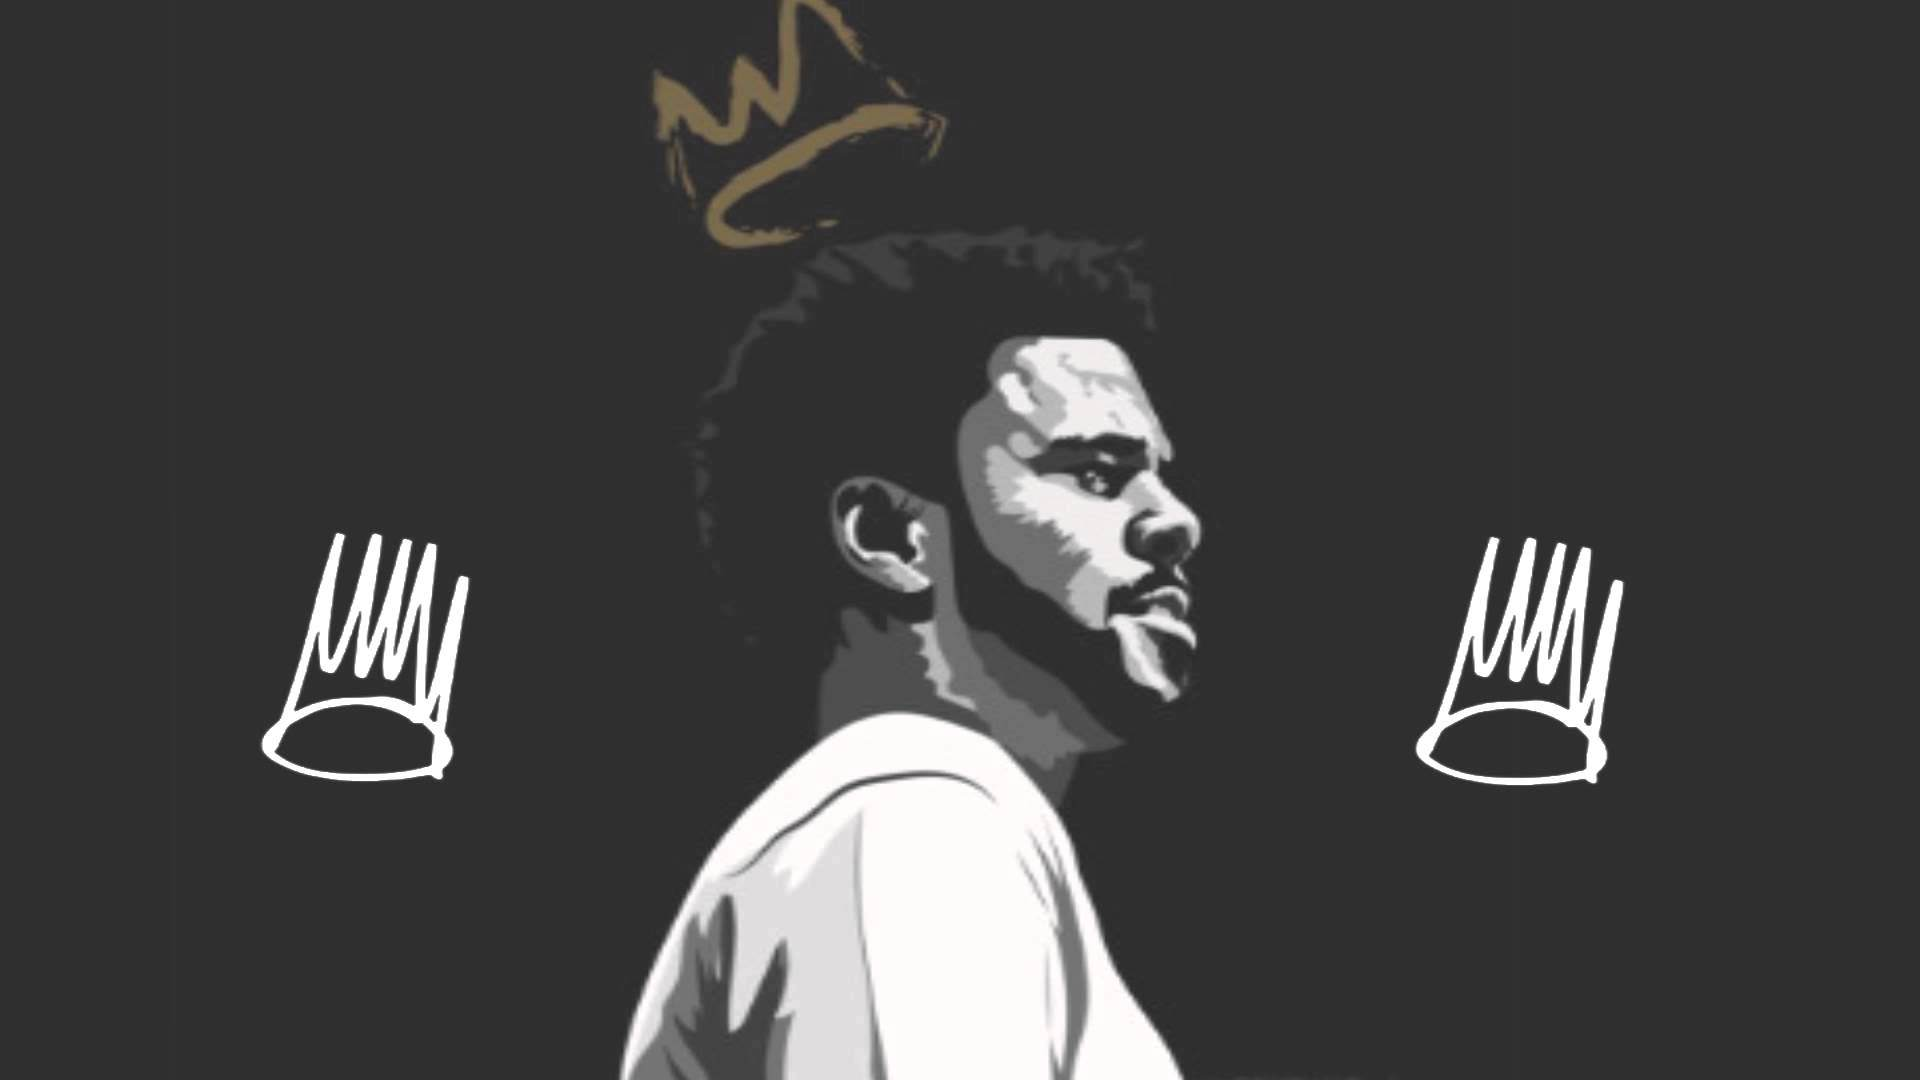 J Cole Wallpapers - Top Free J Cole Backgrounds ...